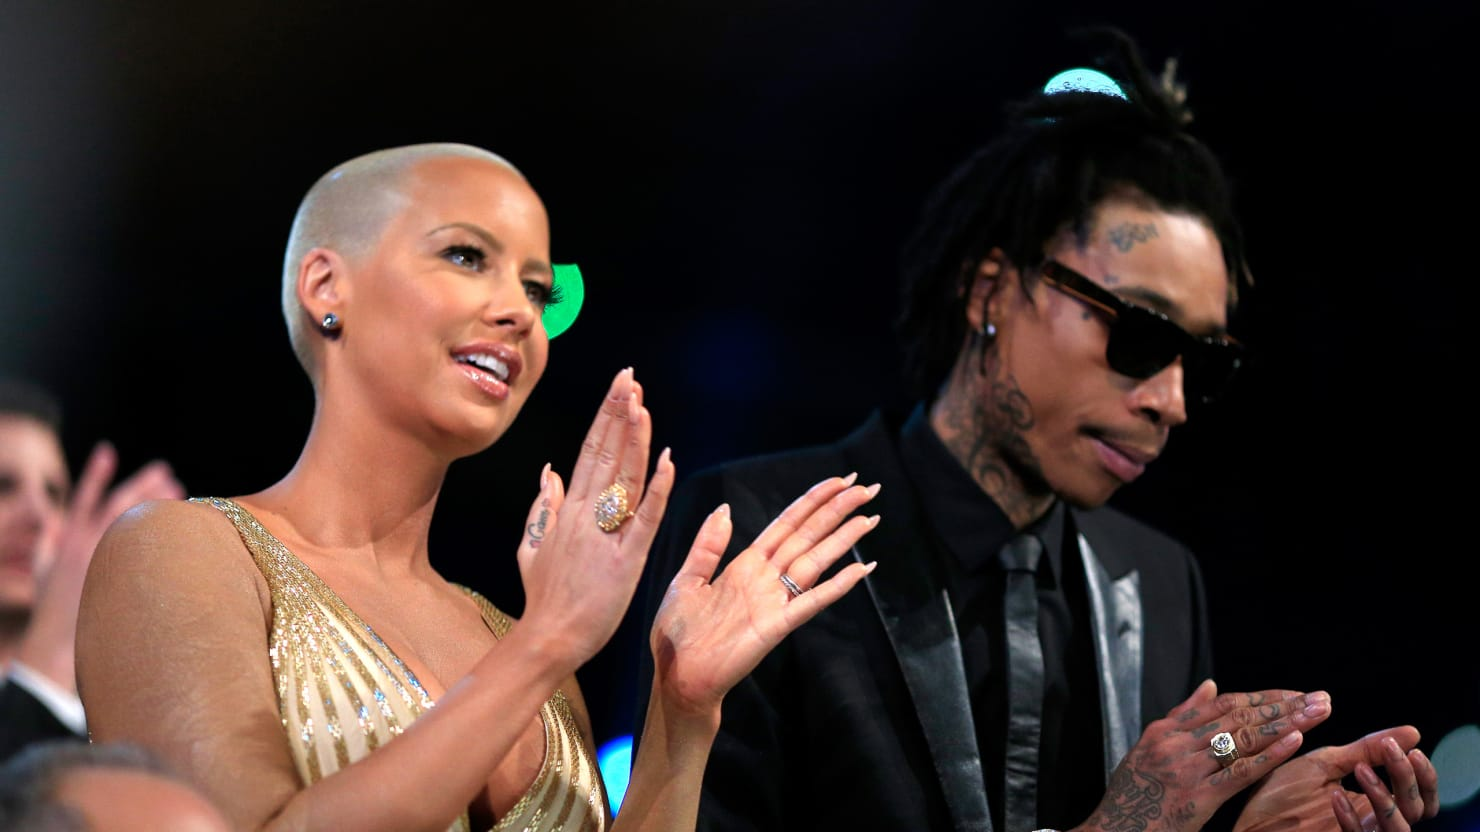 Rapper Wiz Khalifa Violently Arrested by Cops at LAX for Using a Hoverboard